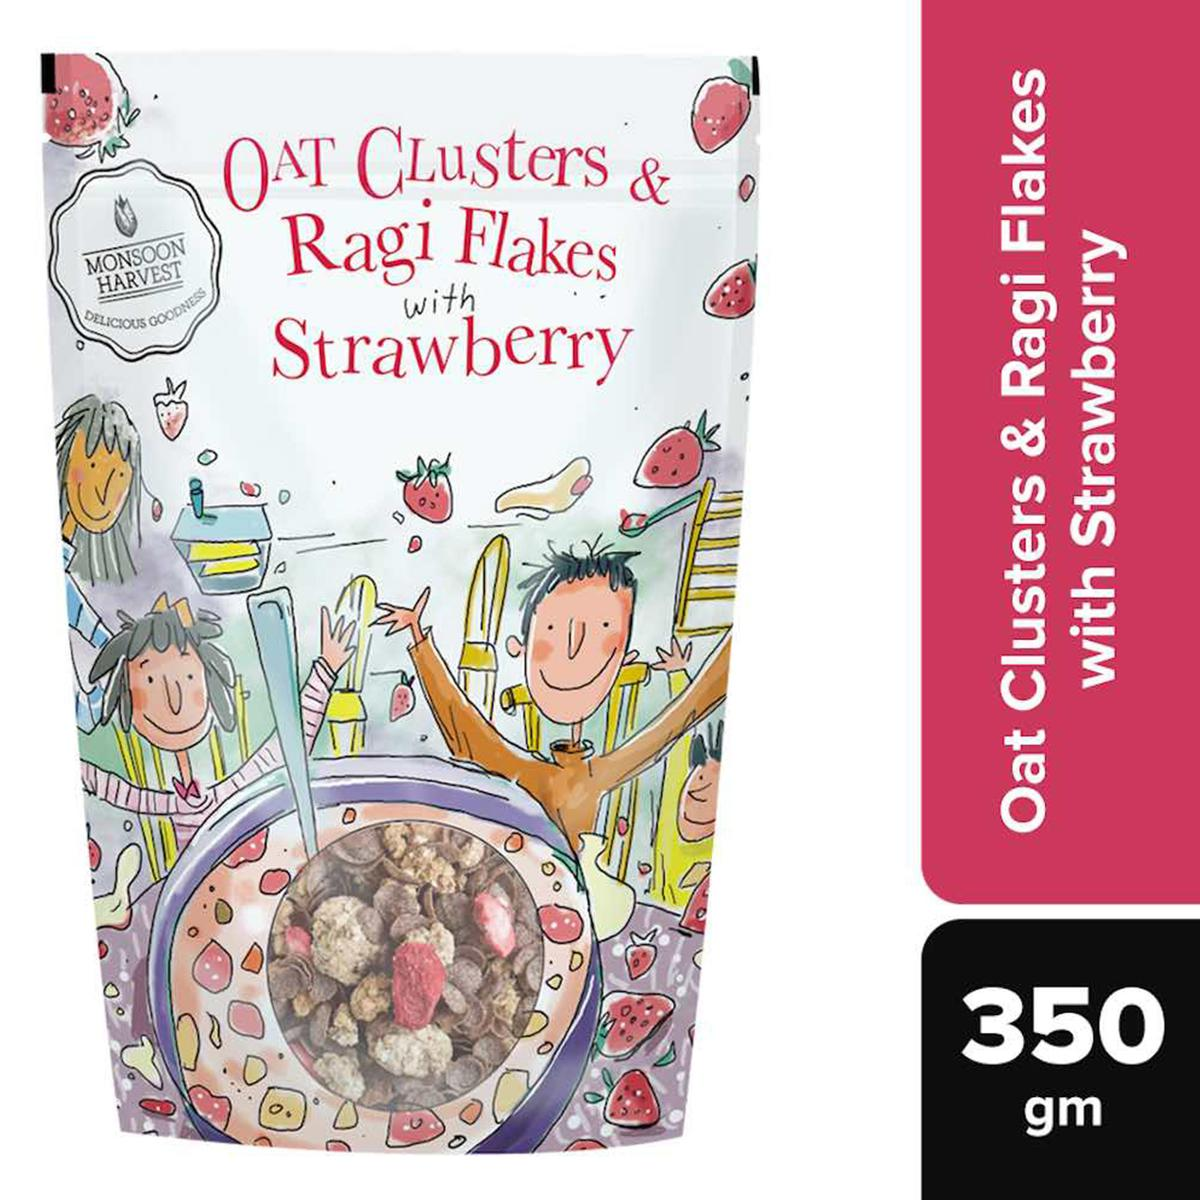 Monsoon Harvest Oat Clusters & Ragi Flakes with Strawberry 350gms